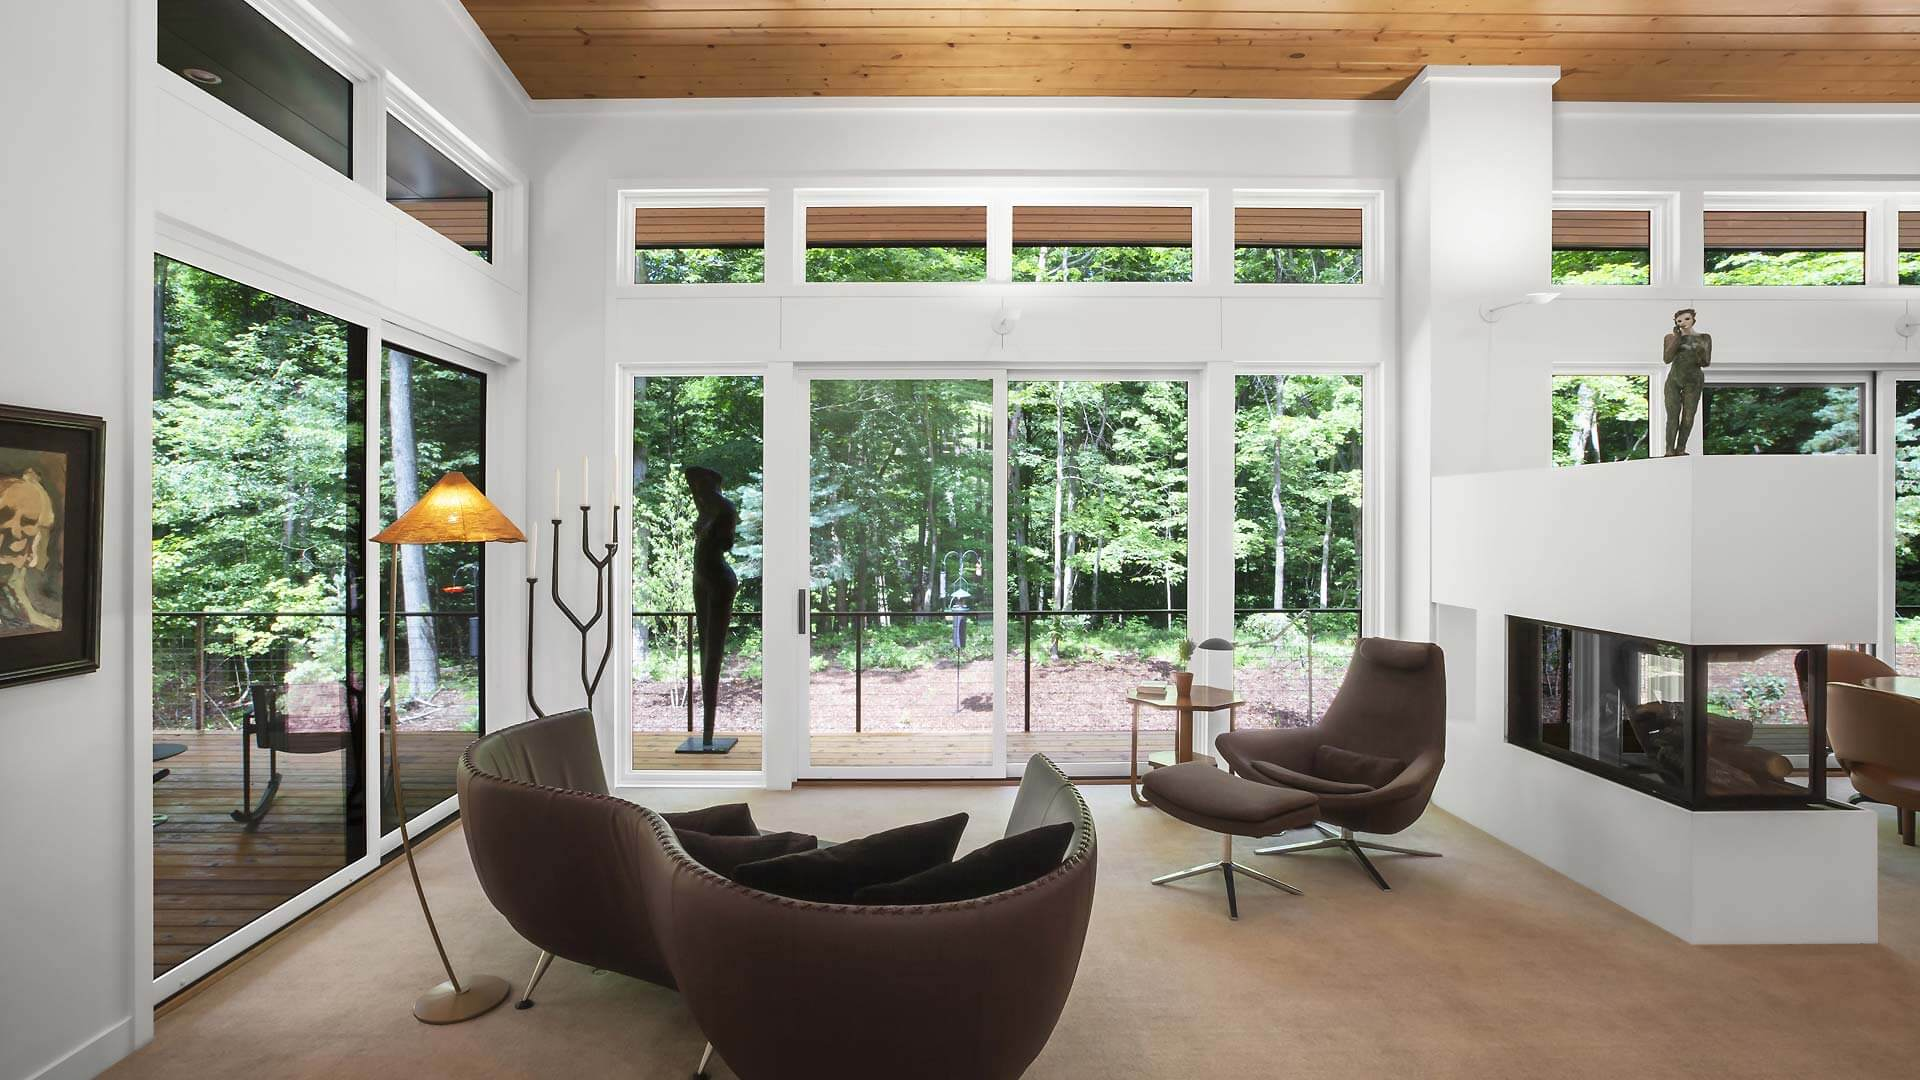 Open concept Living-Dining space optimizes natural light and panoramic views of Pier Cove Valley (photo view looking north) - Bridge House - Fennville, Michigan - Lake Michigan